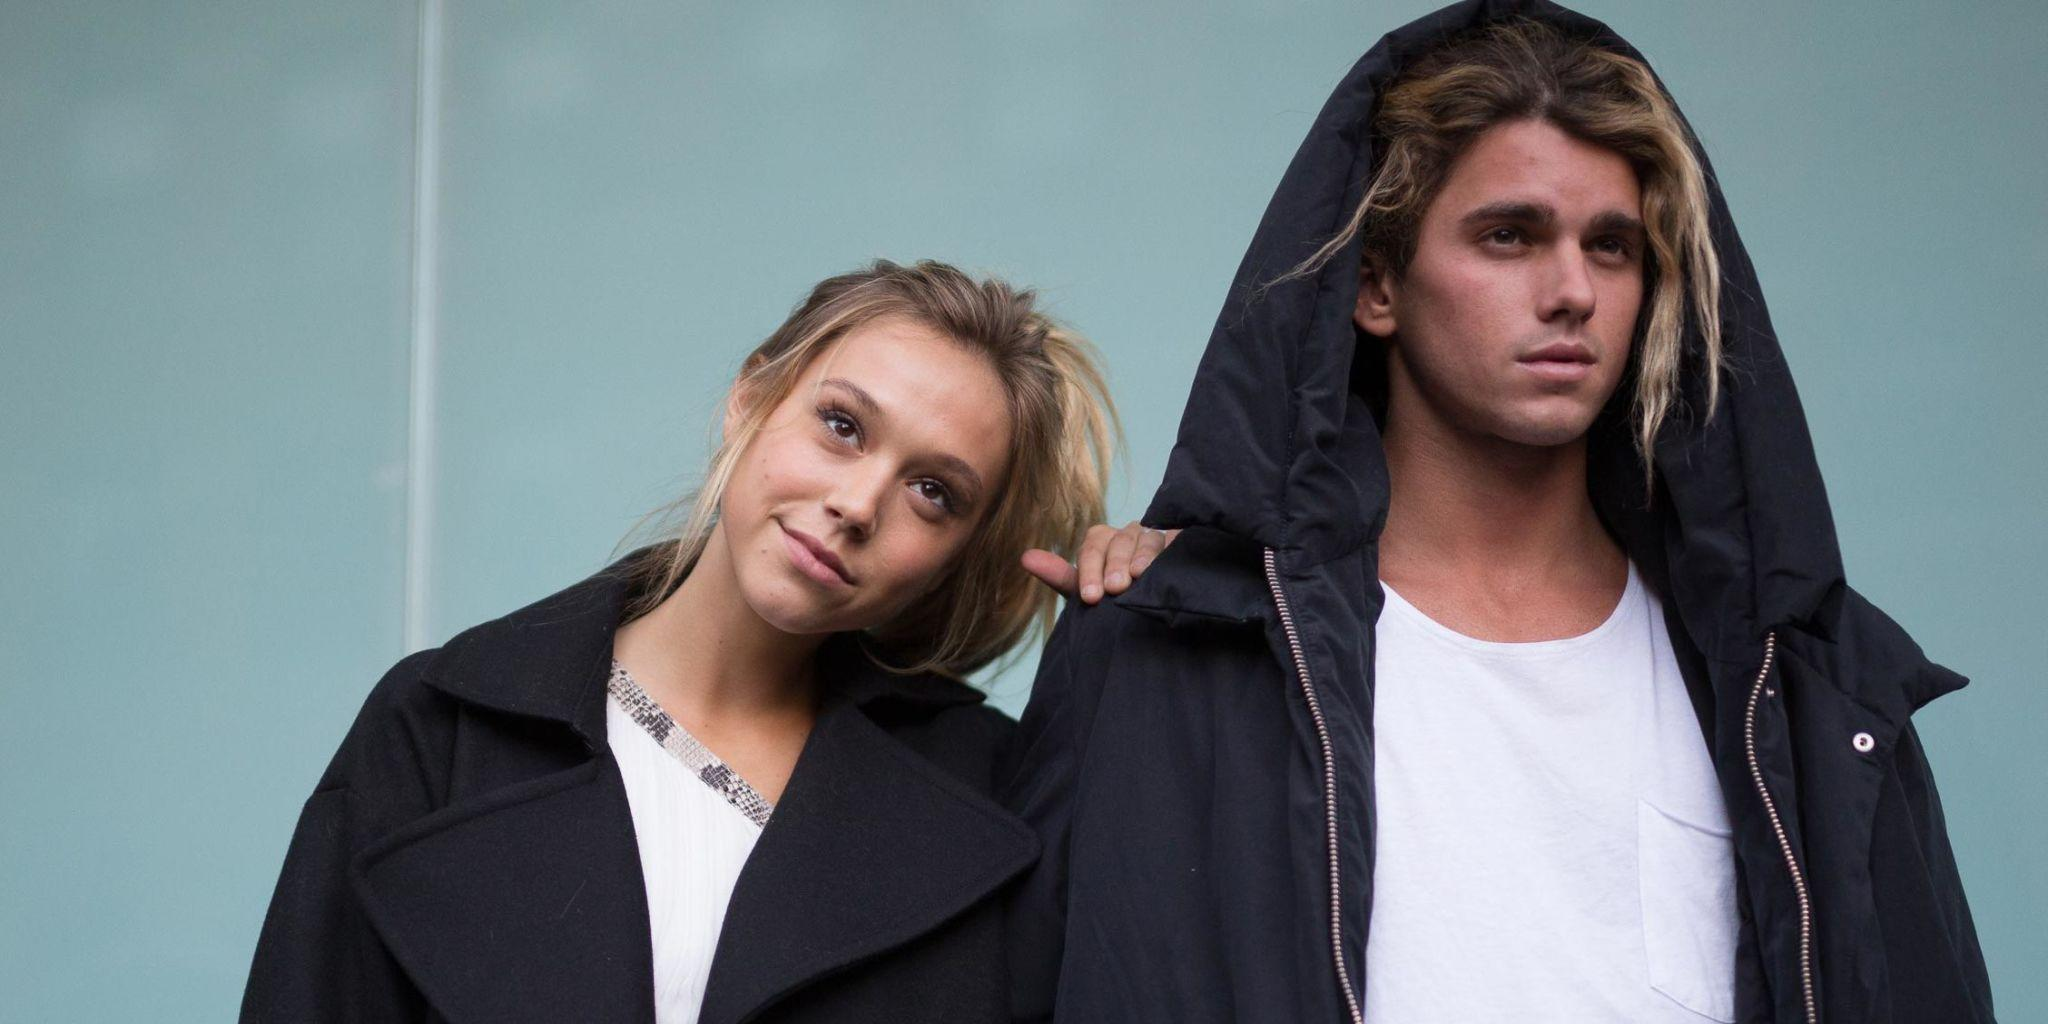 Alexis Ren and her two years boyfriend Jay Alvarrez are no longer a couple